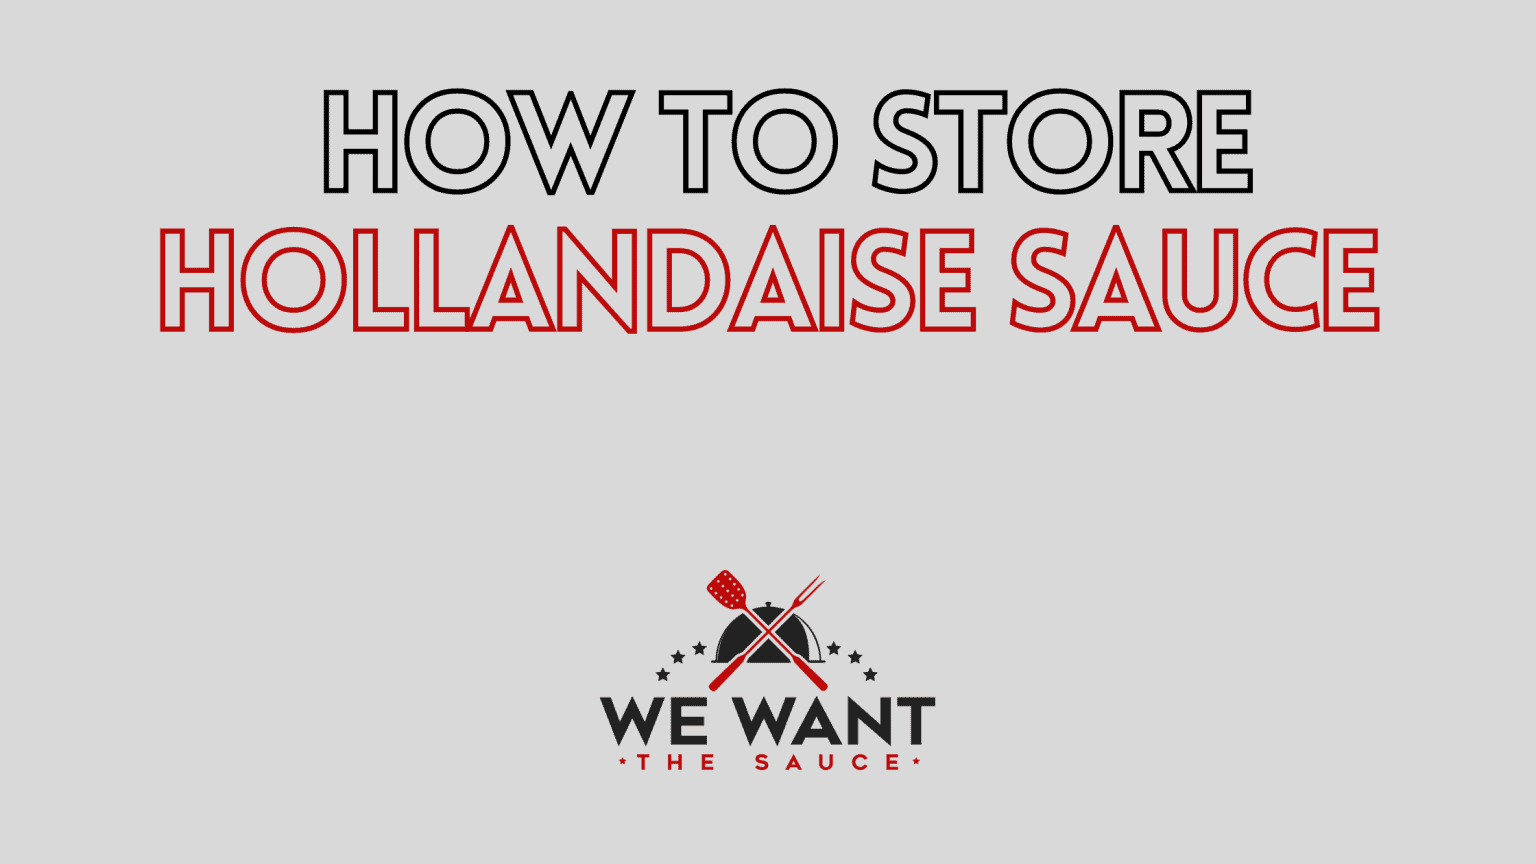 How To Store Hollandaise Sauce